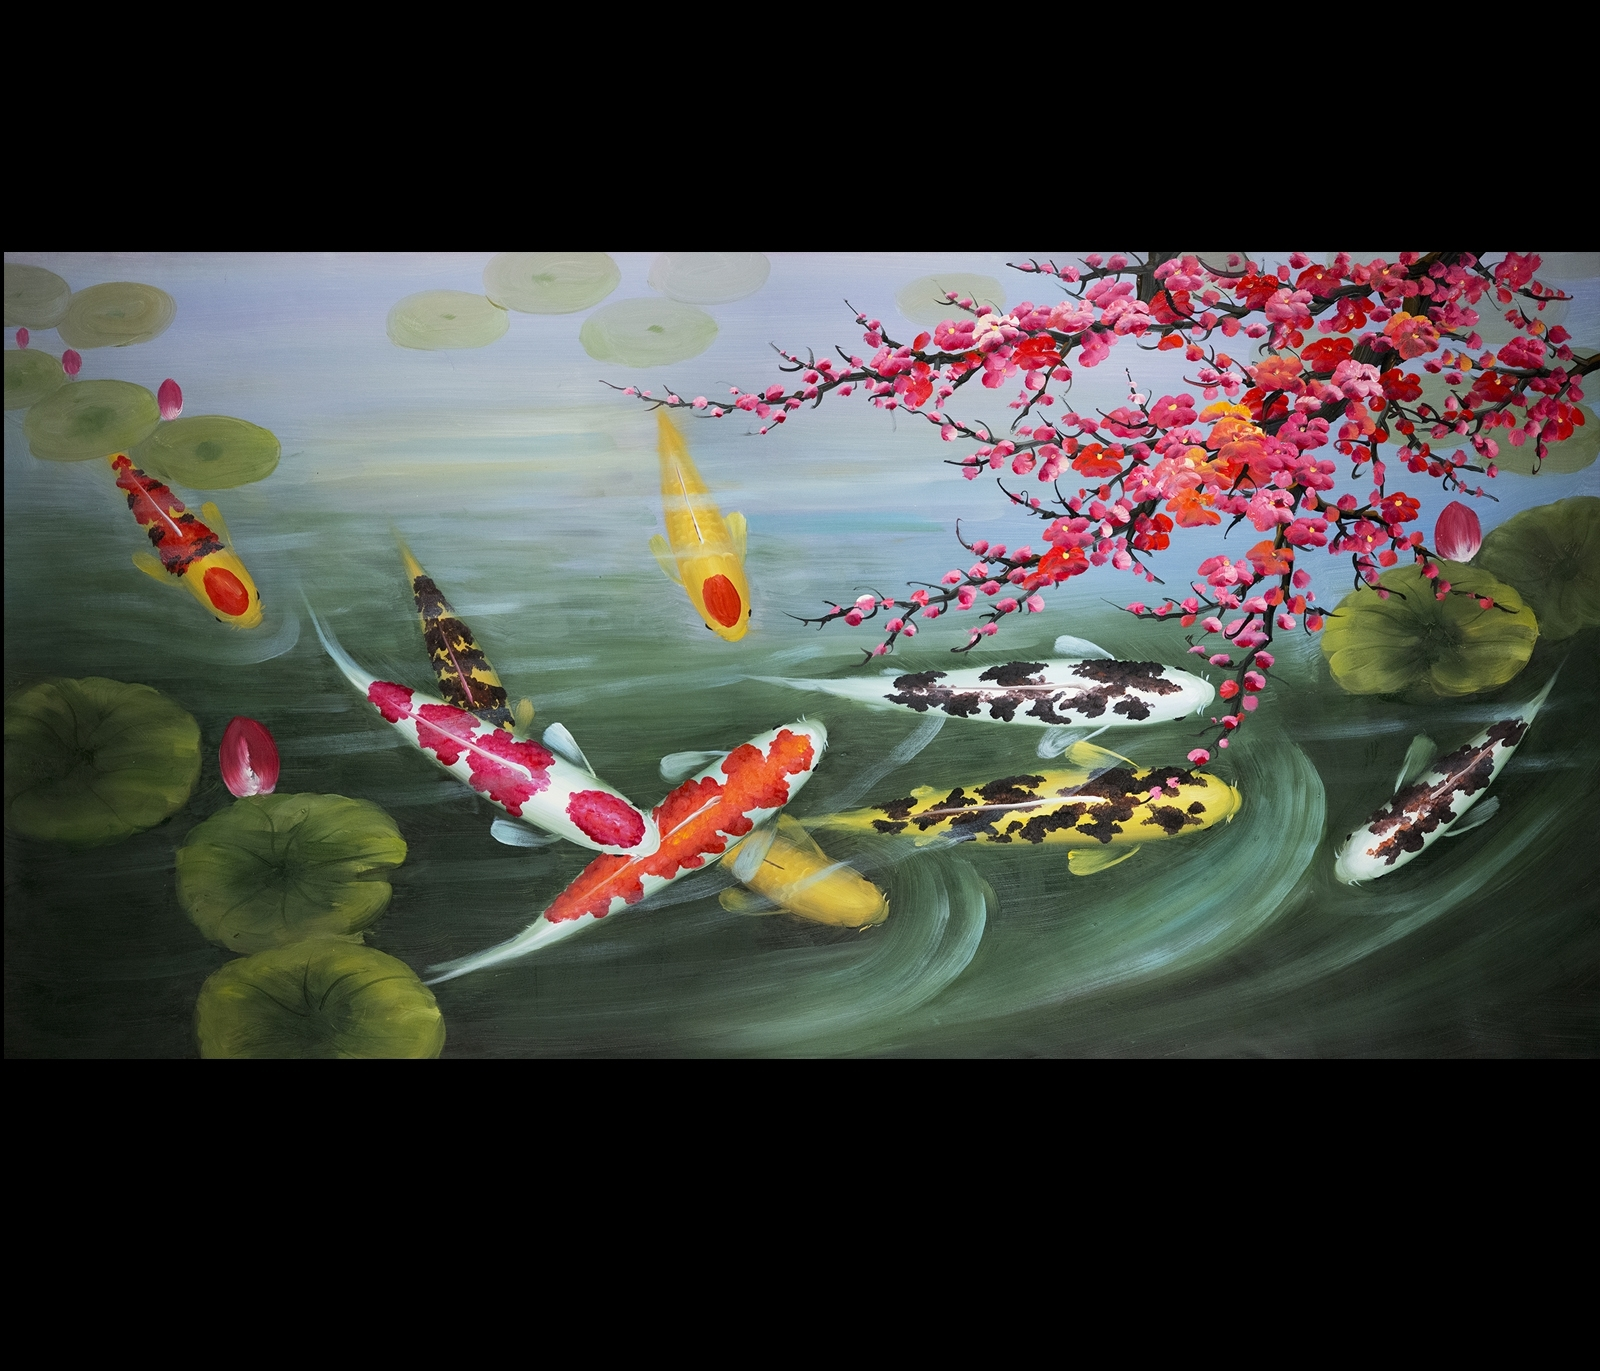 Most Recent Art Painting Stretched Canvas Print Koi Fish Wall Art With Regard To Abstract Fish Wall Art (View 13 of 15)